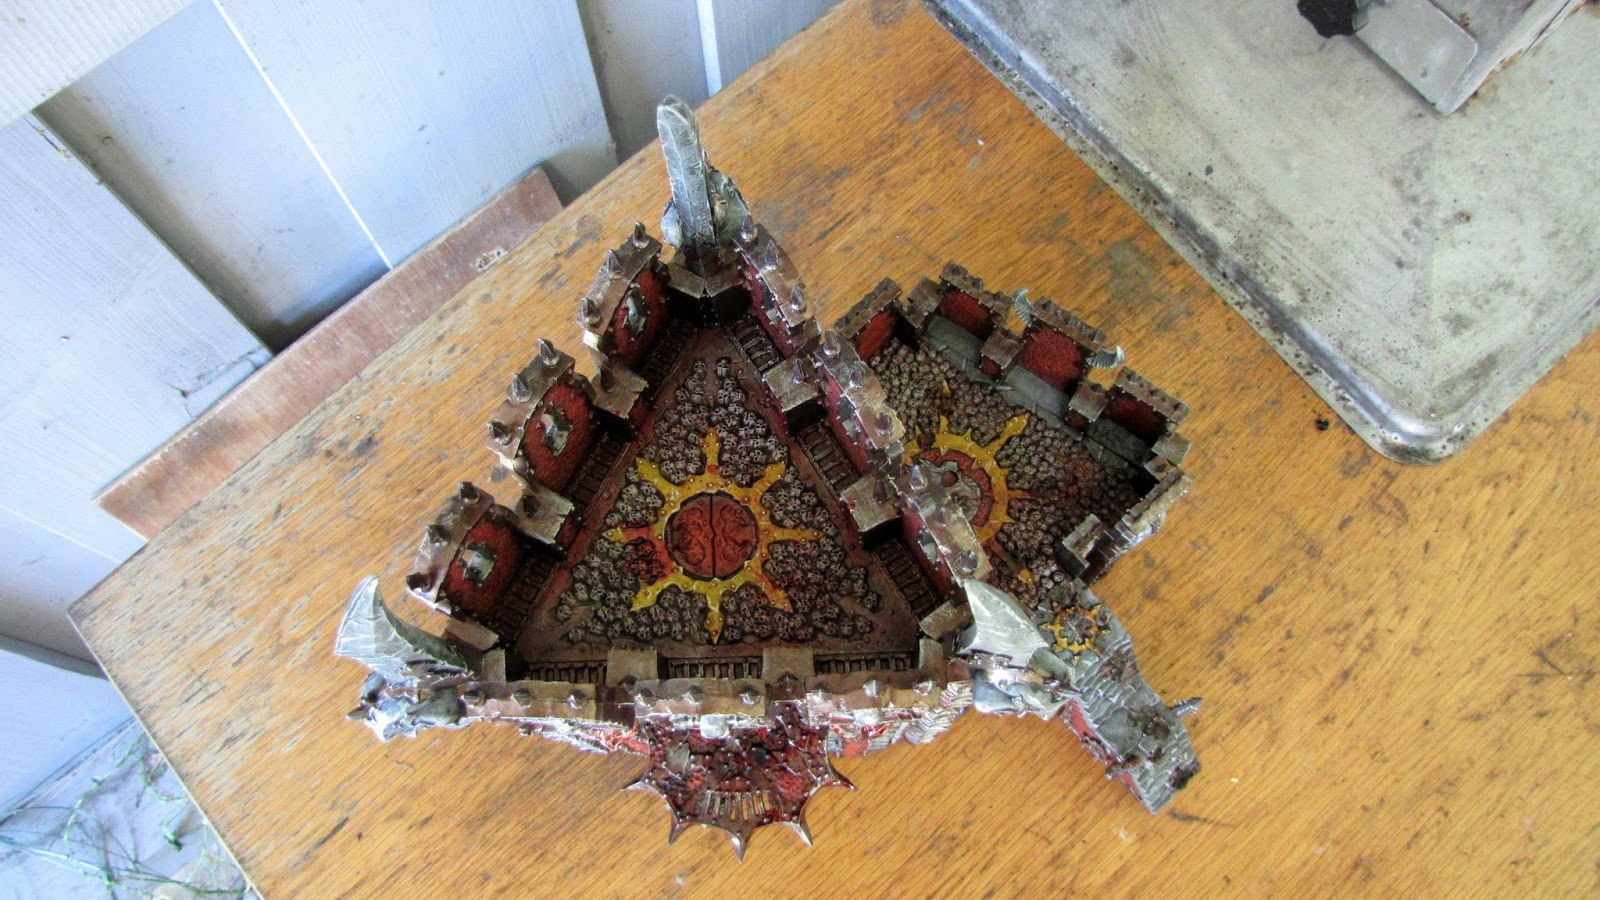 Chaos dreadhold overlord bastion wargaming hub for Chaos overlords